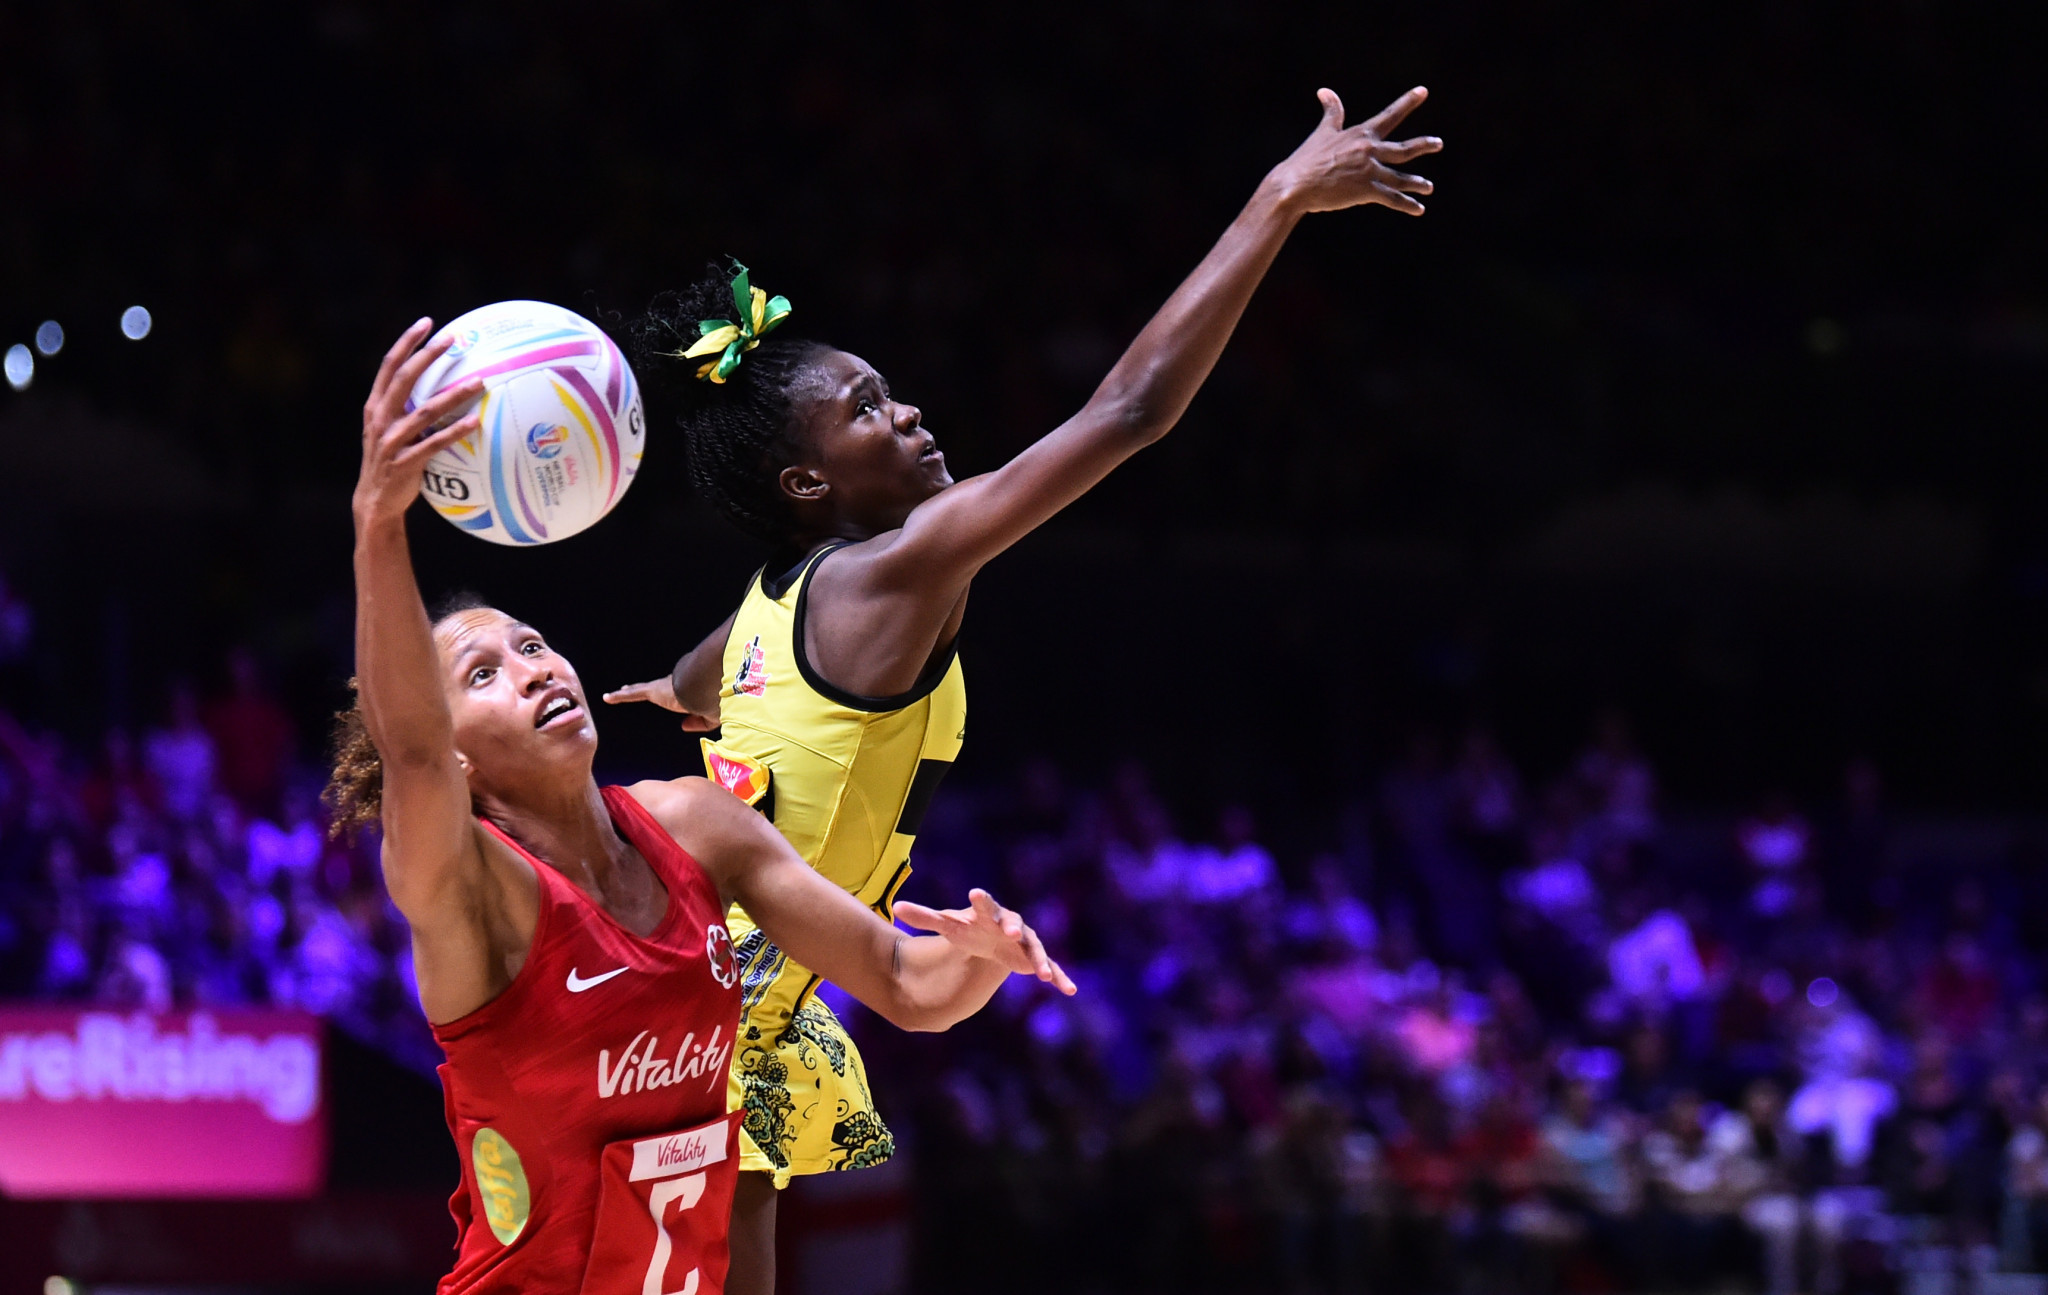 England inch closer to semi-final spot at Netball World Cup